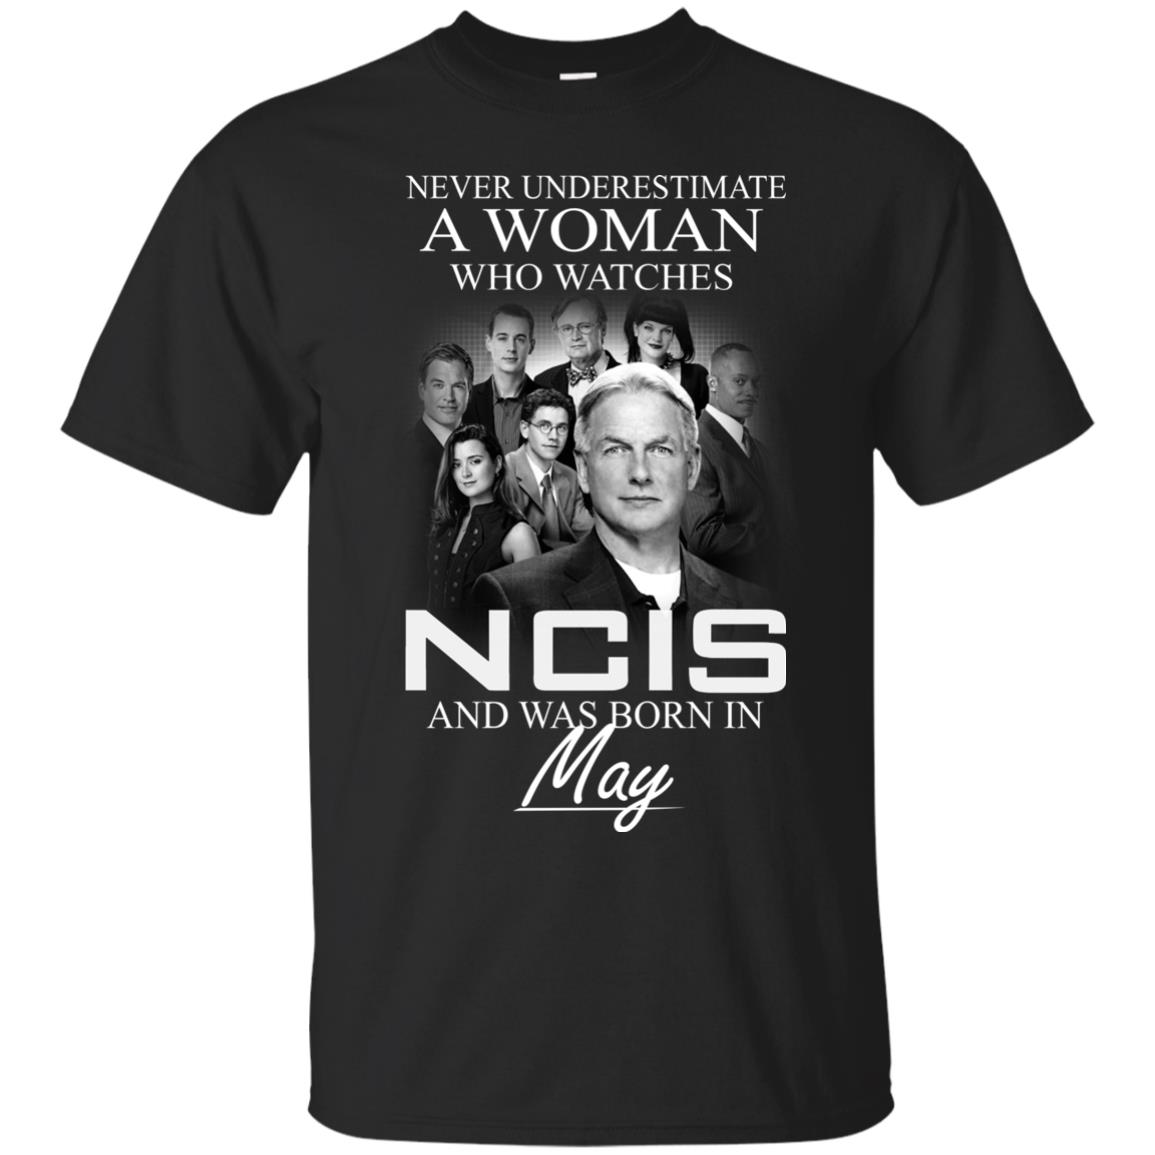 Never underestimate A Woman who watches NCIS and was born in May shirt - image 1181